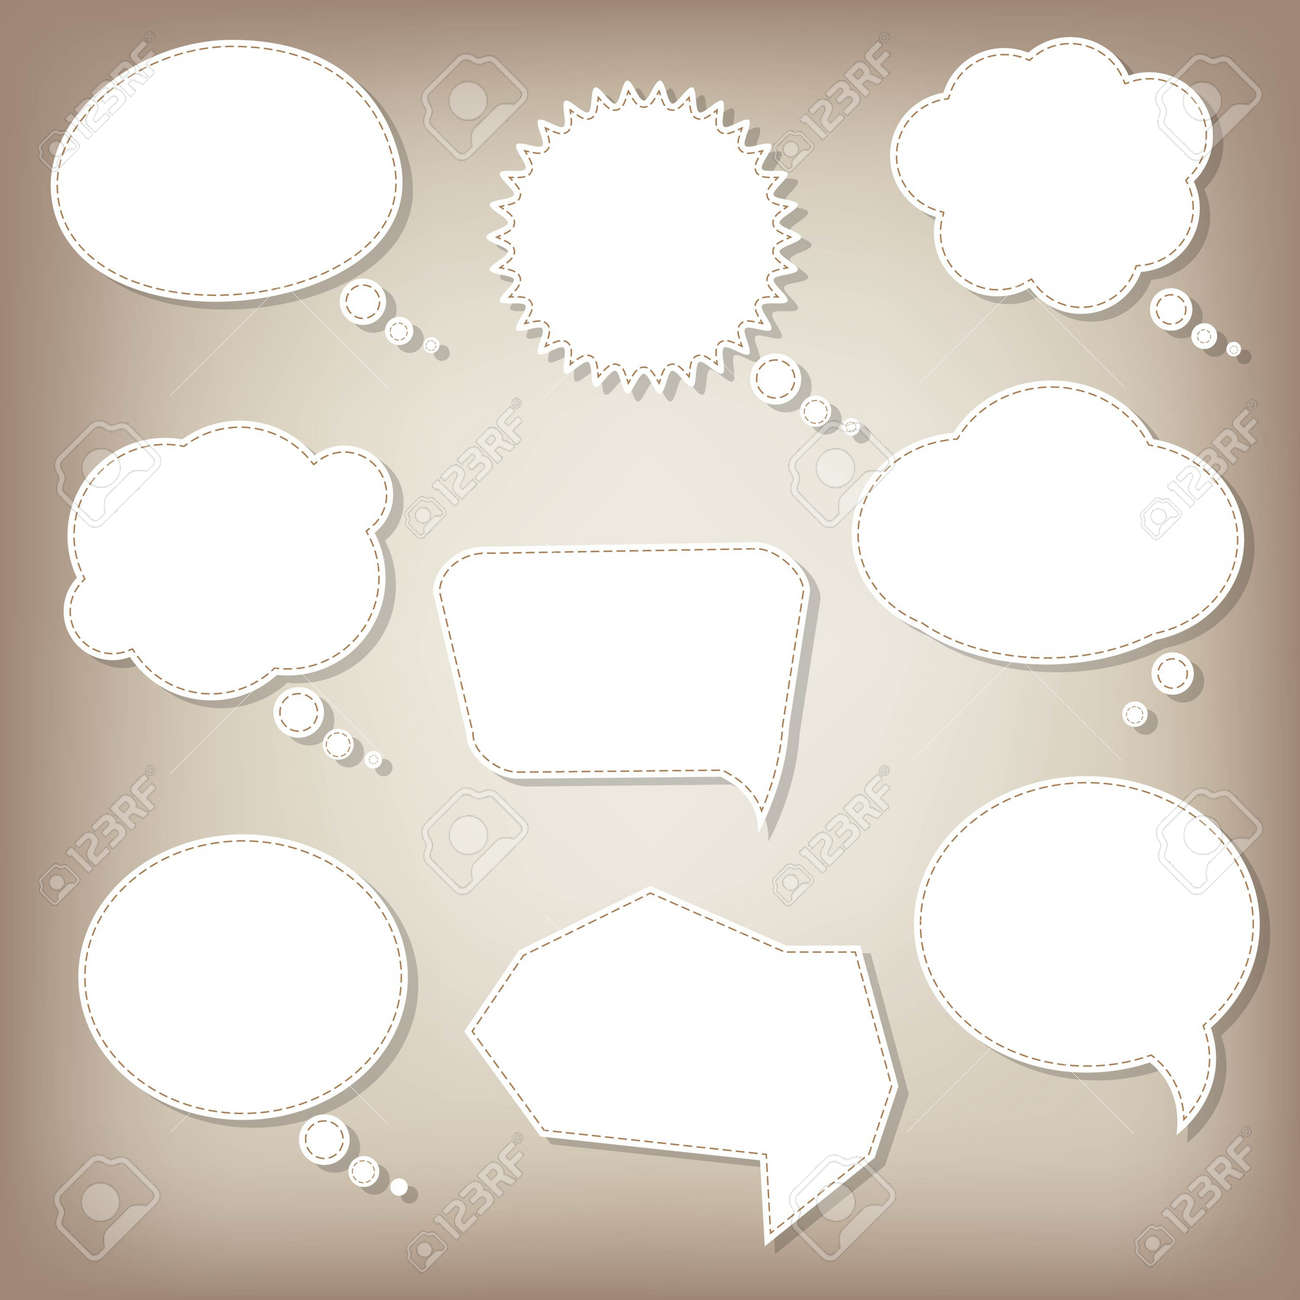 Abstract Speech Bubbles With Gradient Mesh, Vector Illustration - 19714033